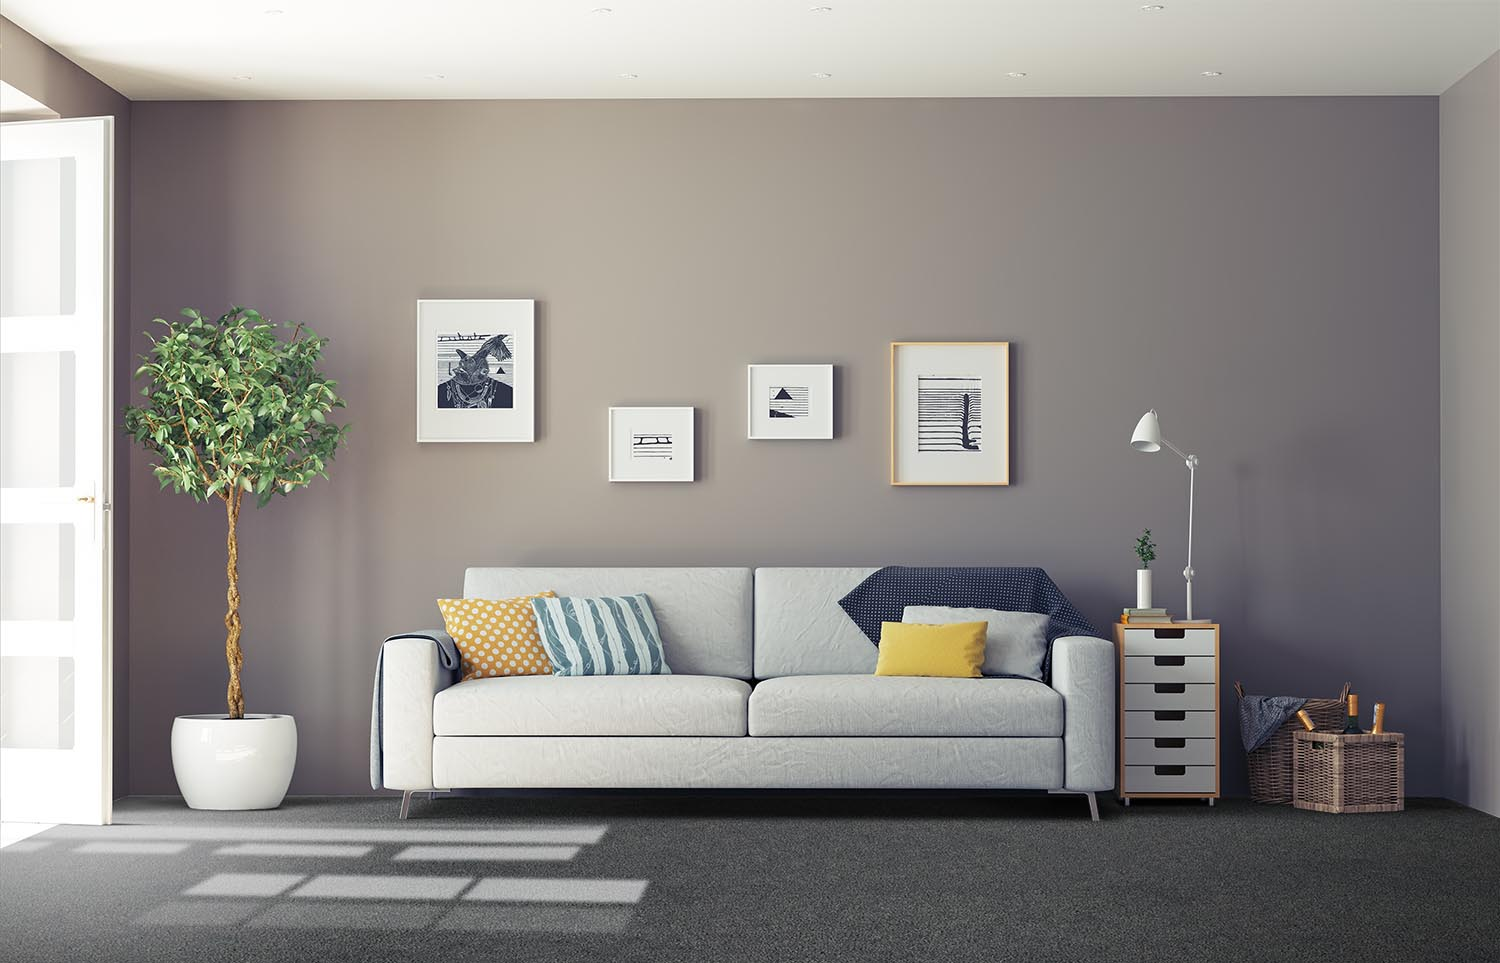 Mantra - M301 - Inky classic living room